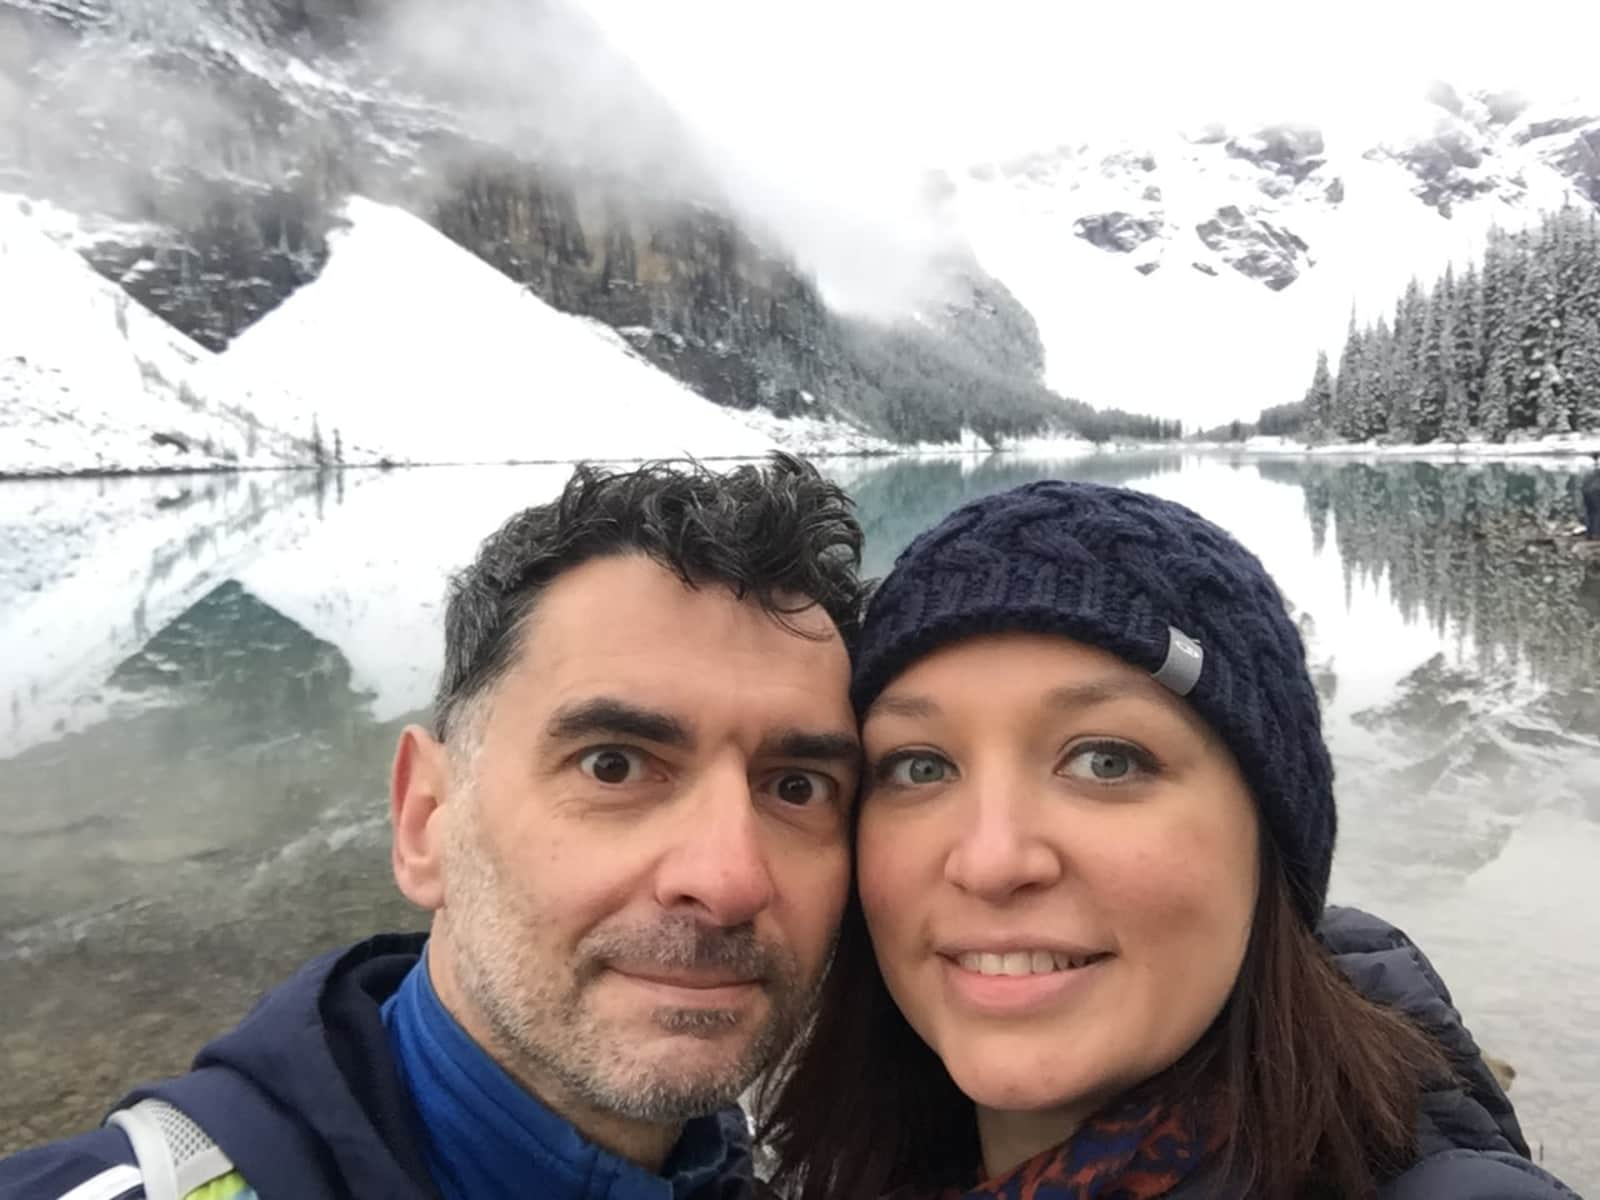 Magali & Vito from Limoges, France